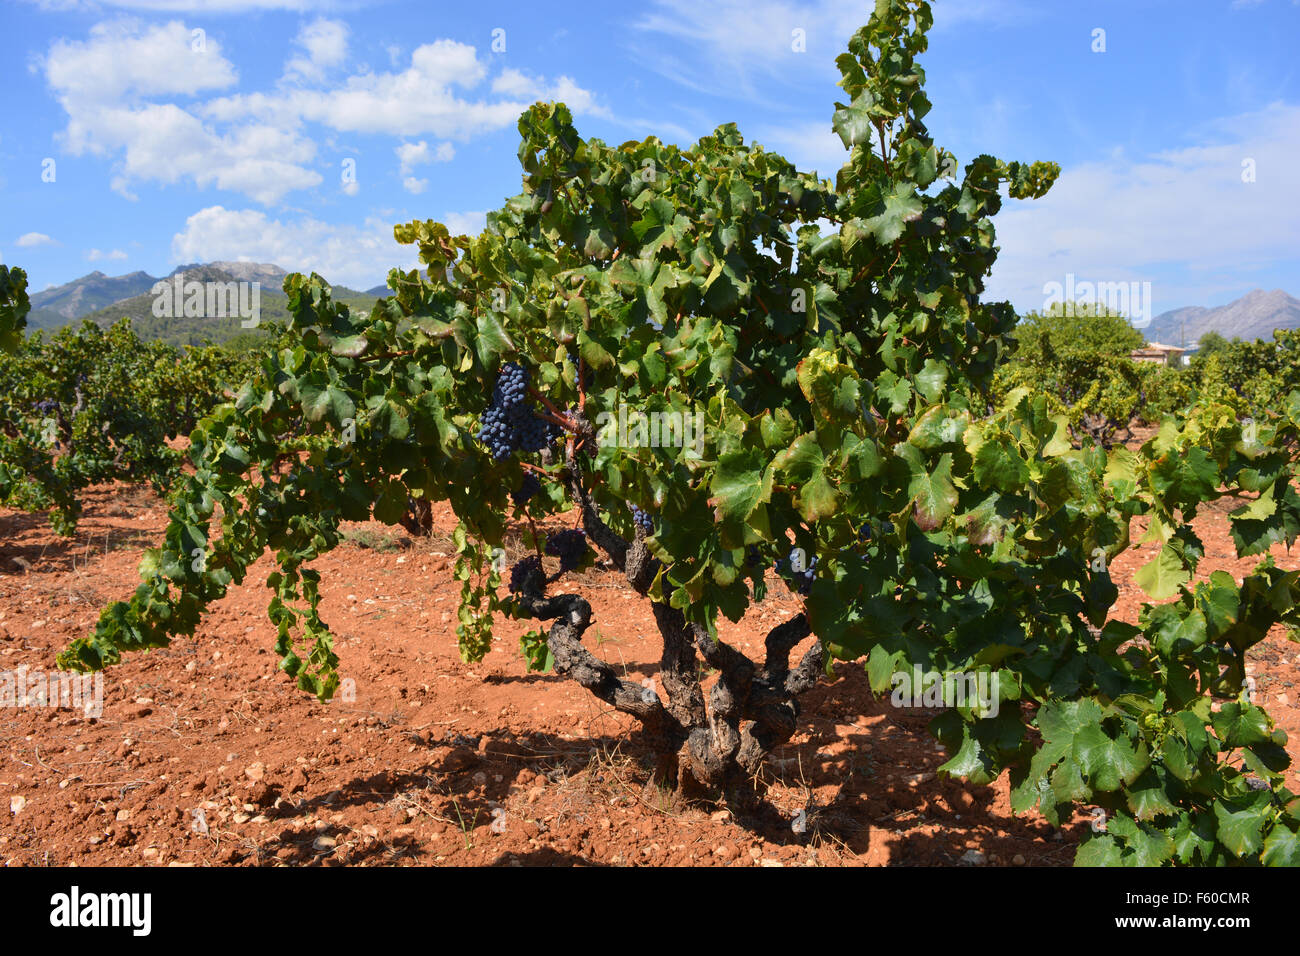 Vineyard in wine producing area of the Jalon Valley, Alicante Province, Spain. - Stock Image